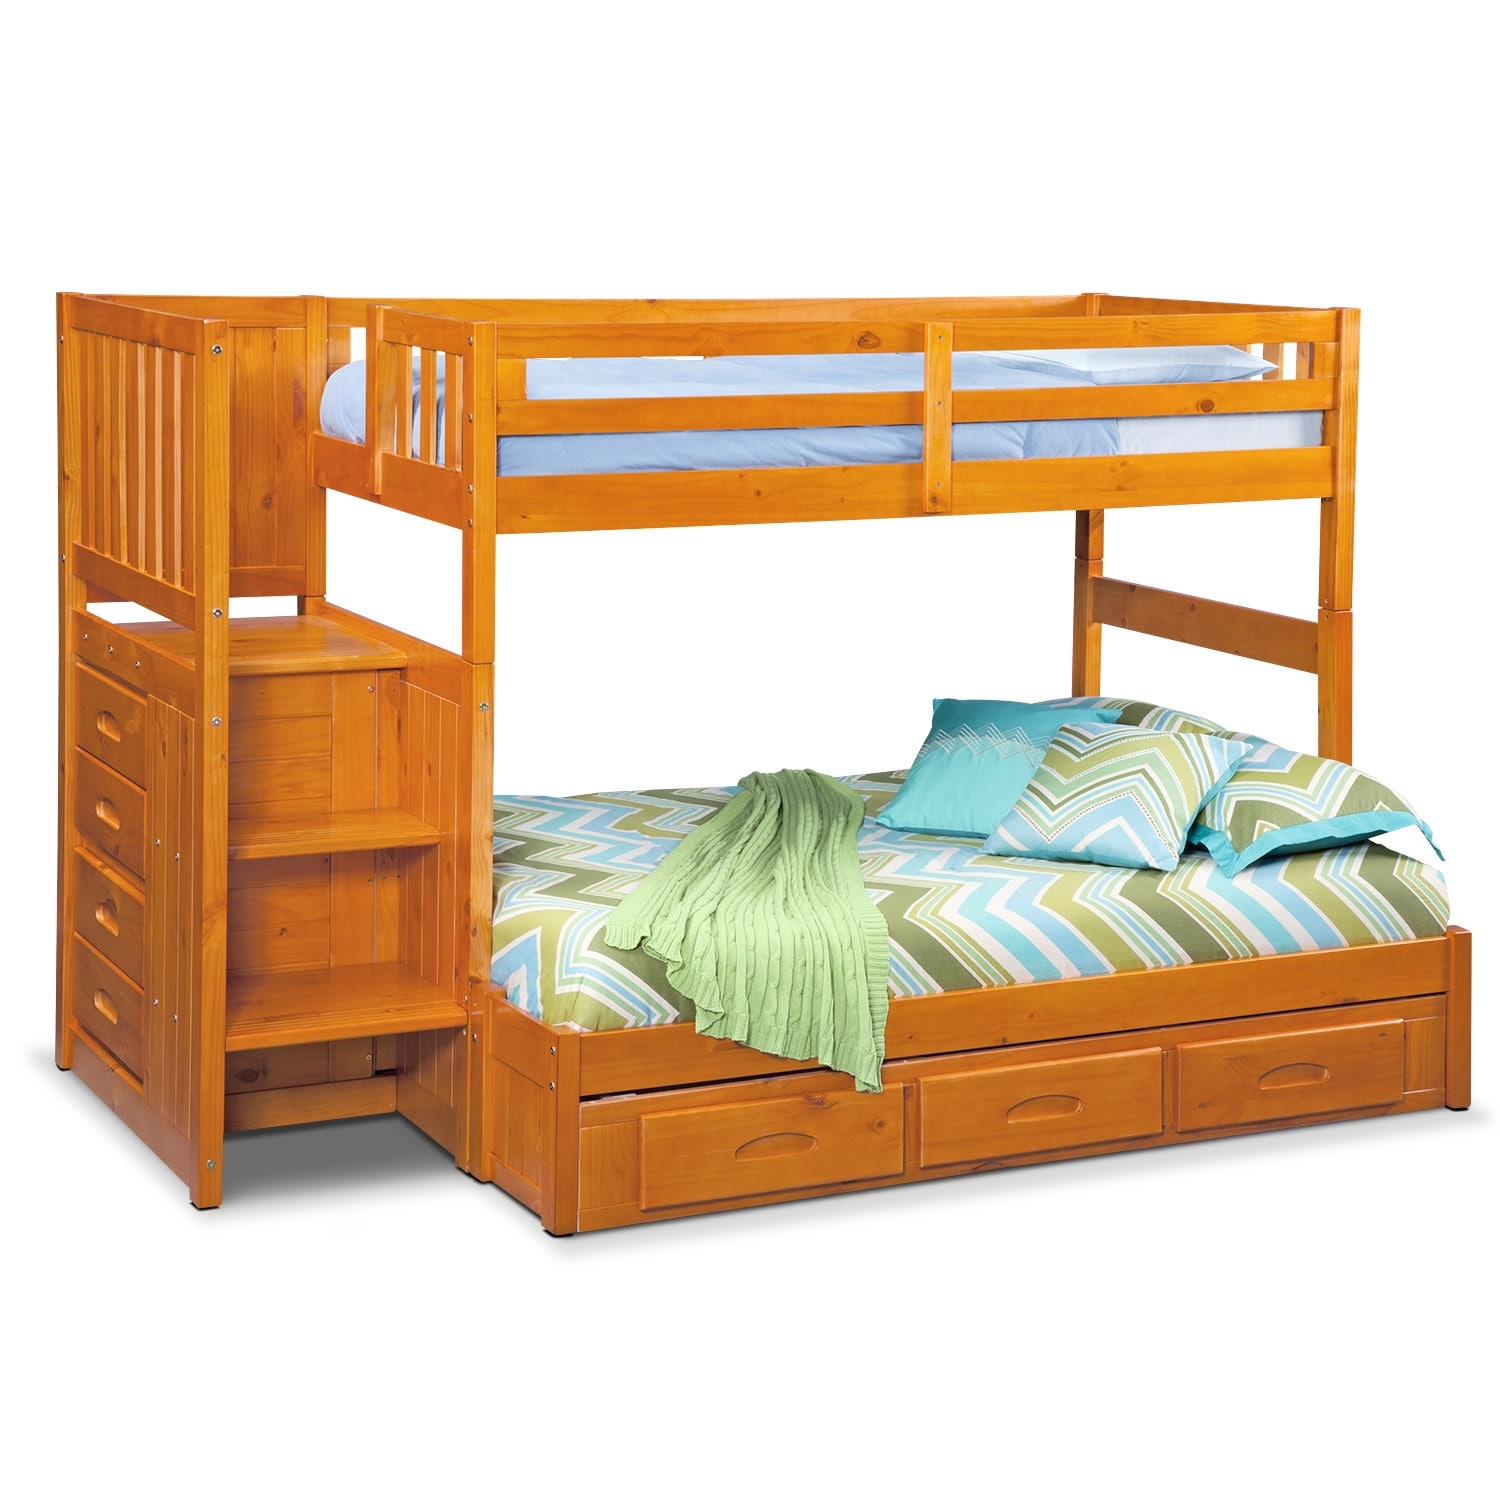 Value City Furniture Twin Over Full Bunk Bed